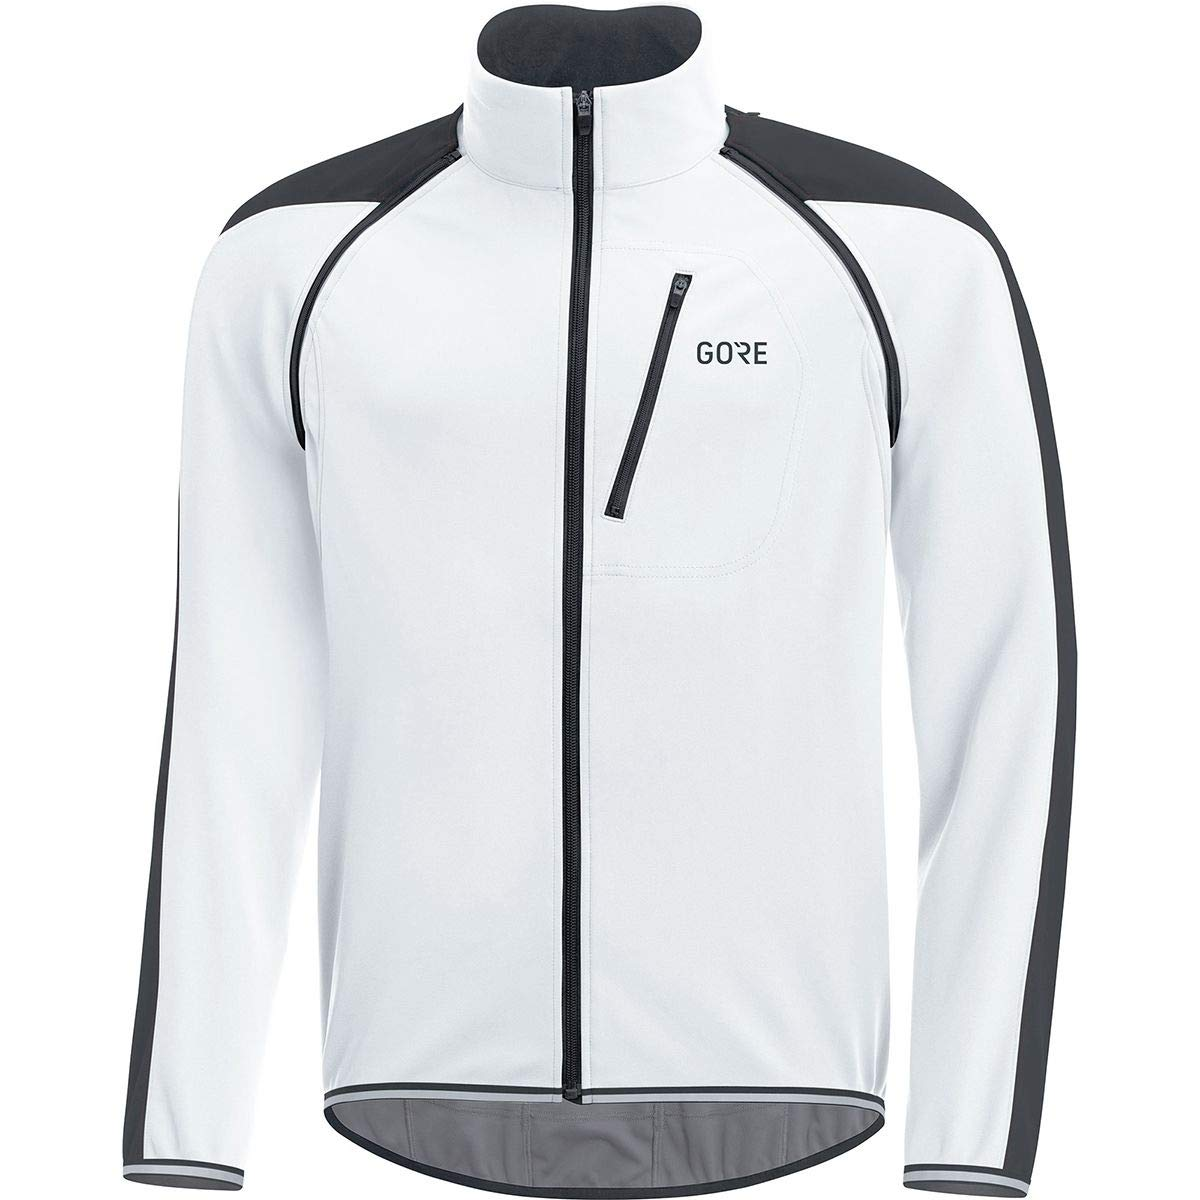 GORE Wear Men's Windproof Road Cycling Jacket, Removable Sleeves, GORE Wear C3 GORE Wear WINDSTOPPER PHANTOM Zip-Off Jacket, Size: L, Color: White/Black, 100190 by GORE WEAR